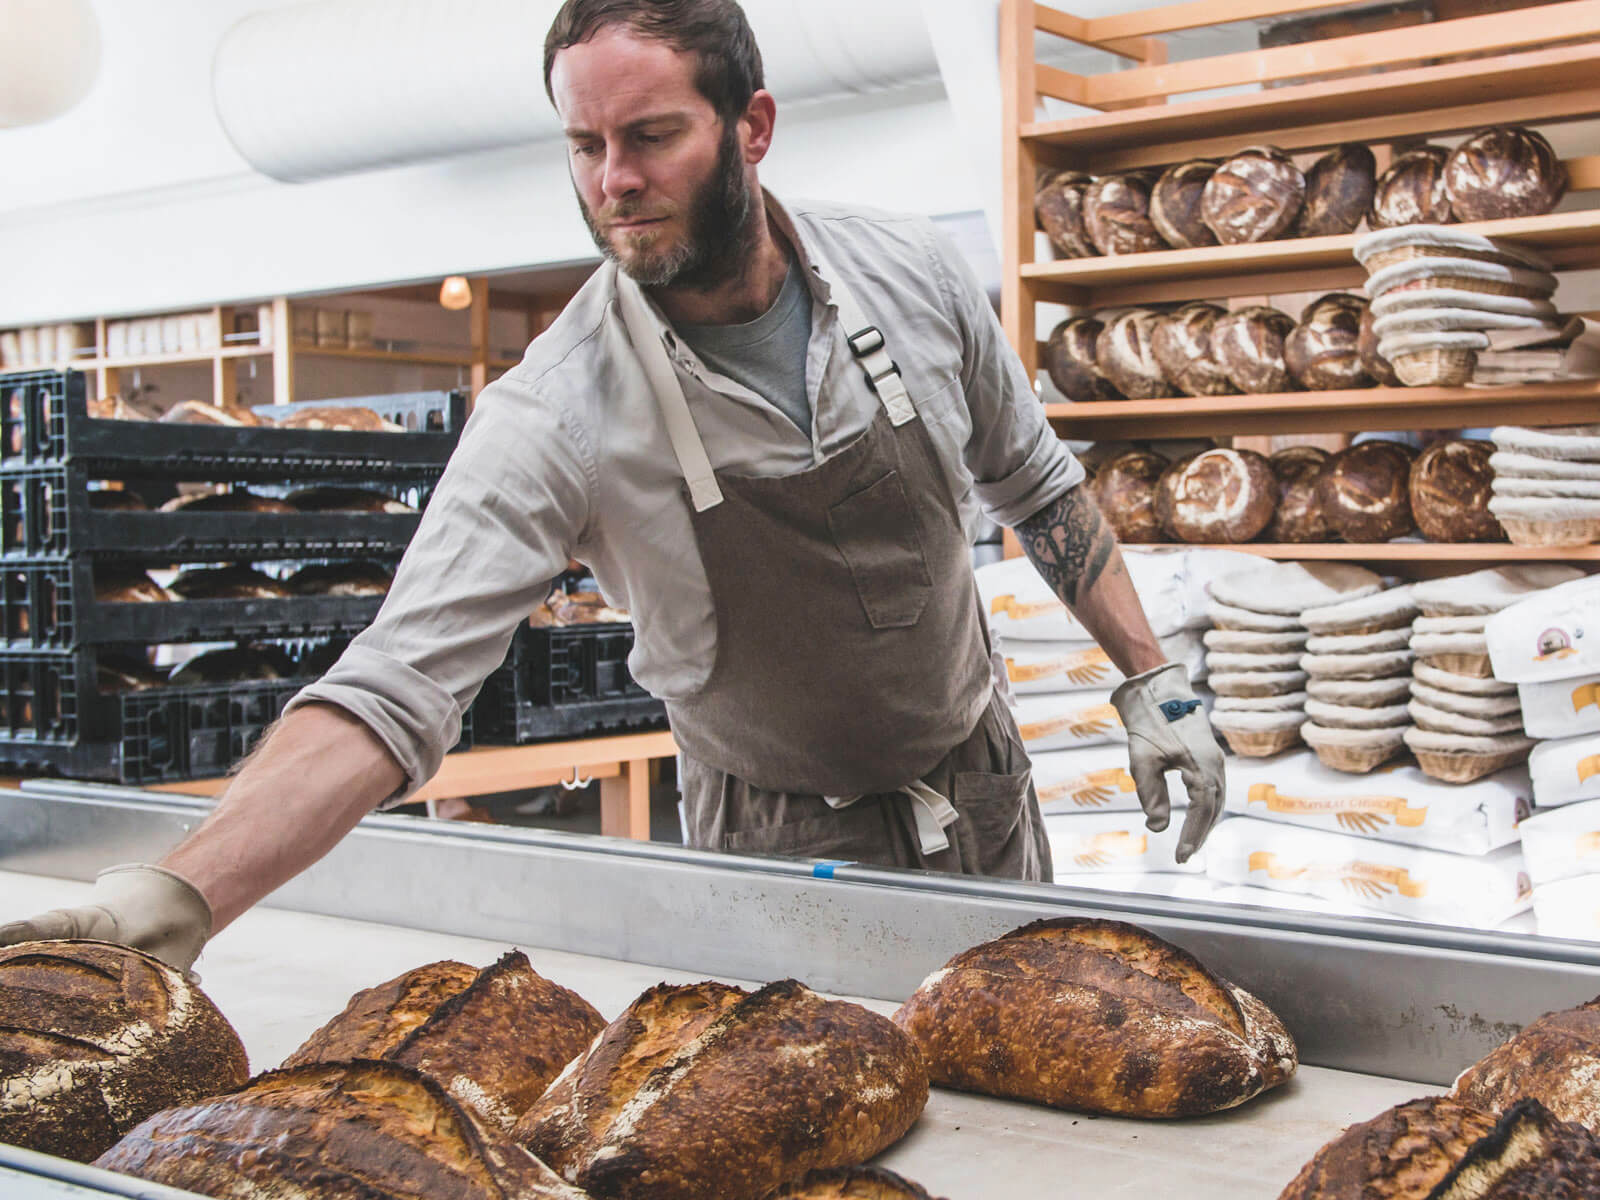 Inbakeries, it's mainly used to blow off bread crumbs. For thesnack food factories, compressed air is needed to generate nitrogen, which purges the ambient air from the packaging bag.